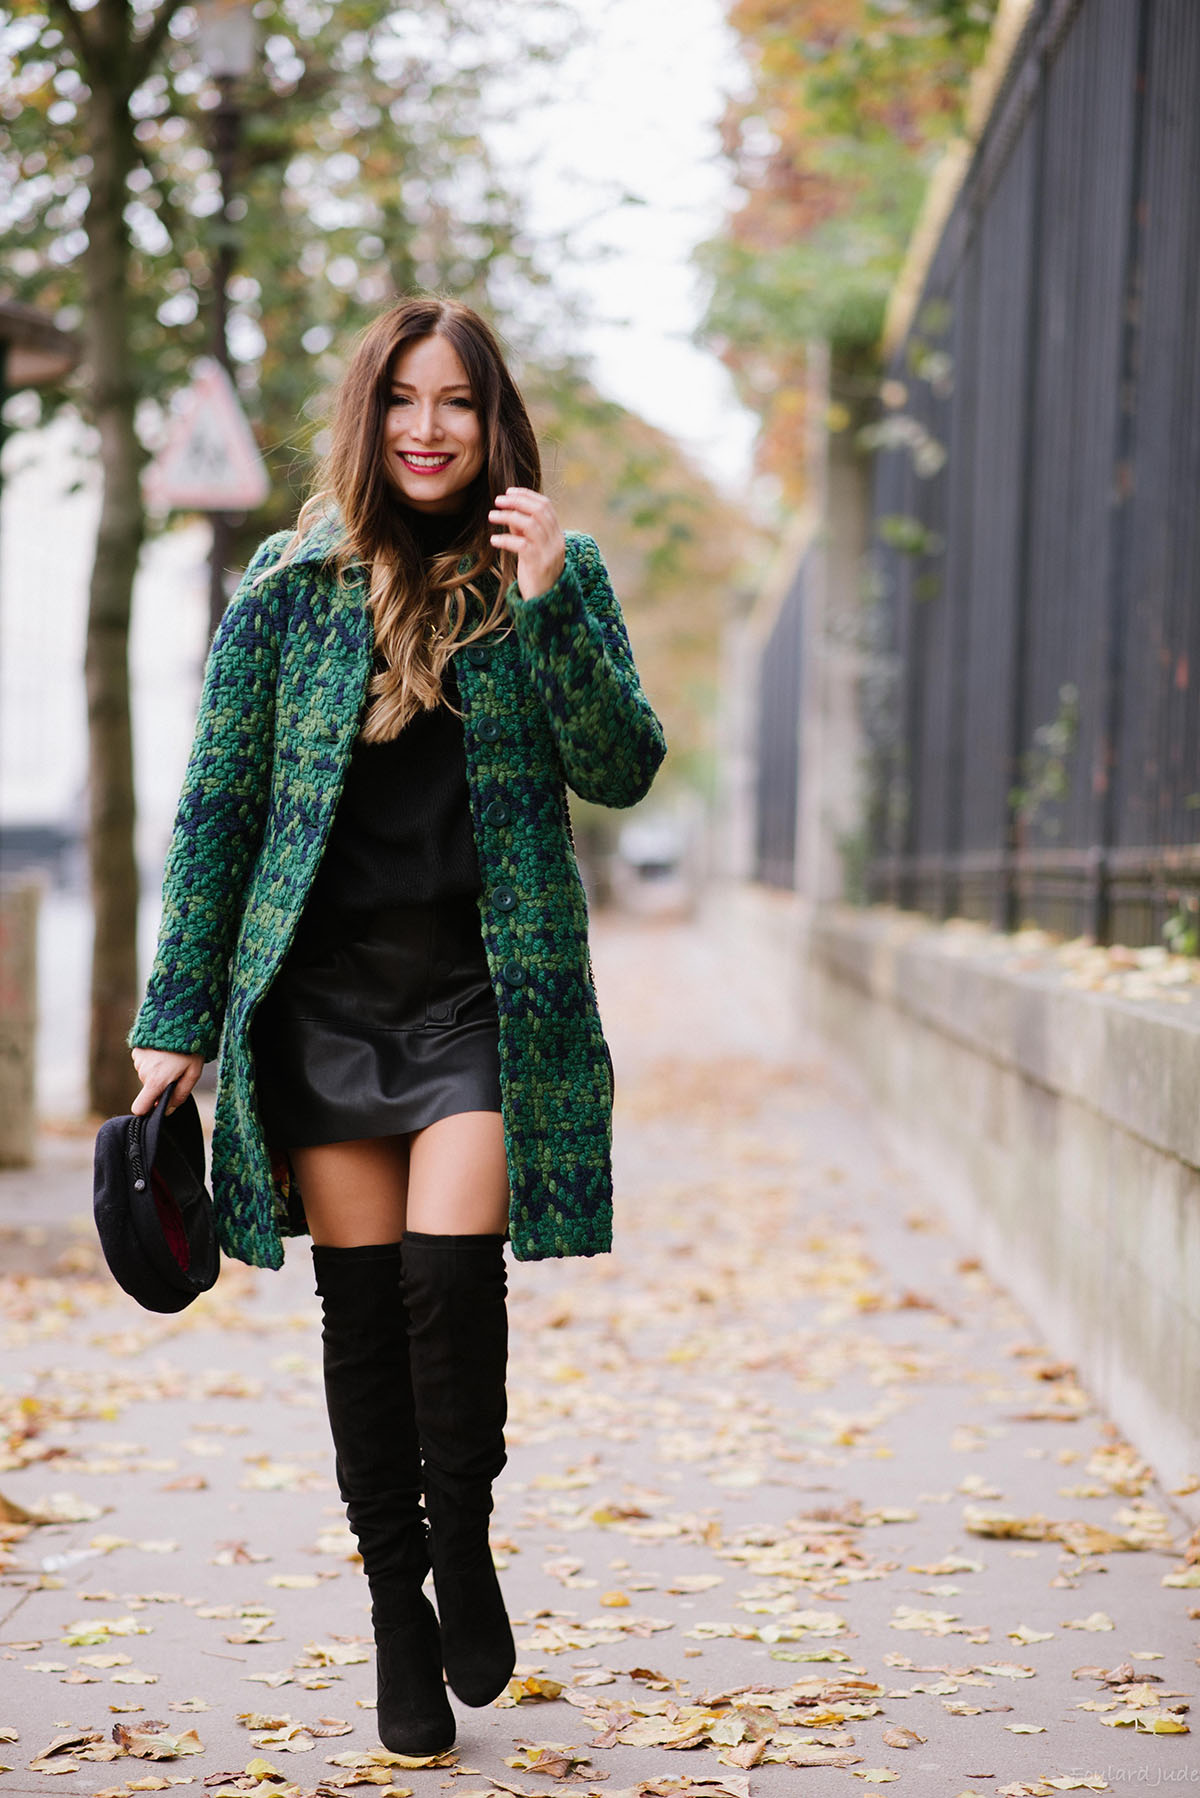 comment-porter-le-manteau-vert-look-blog-mode